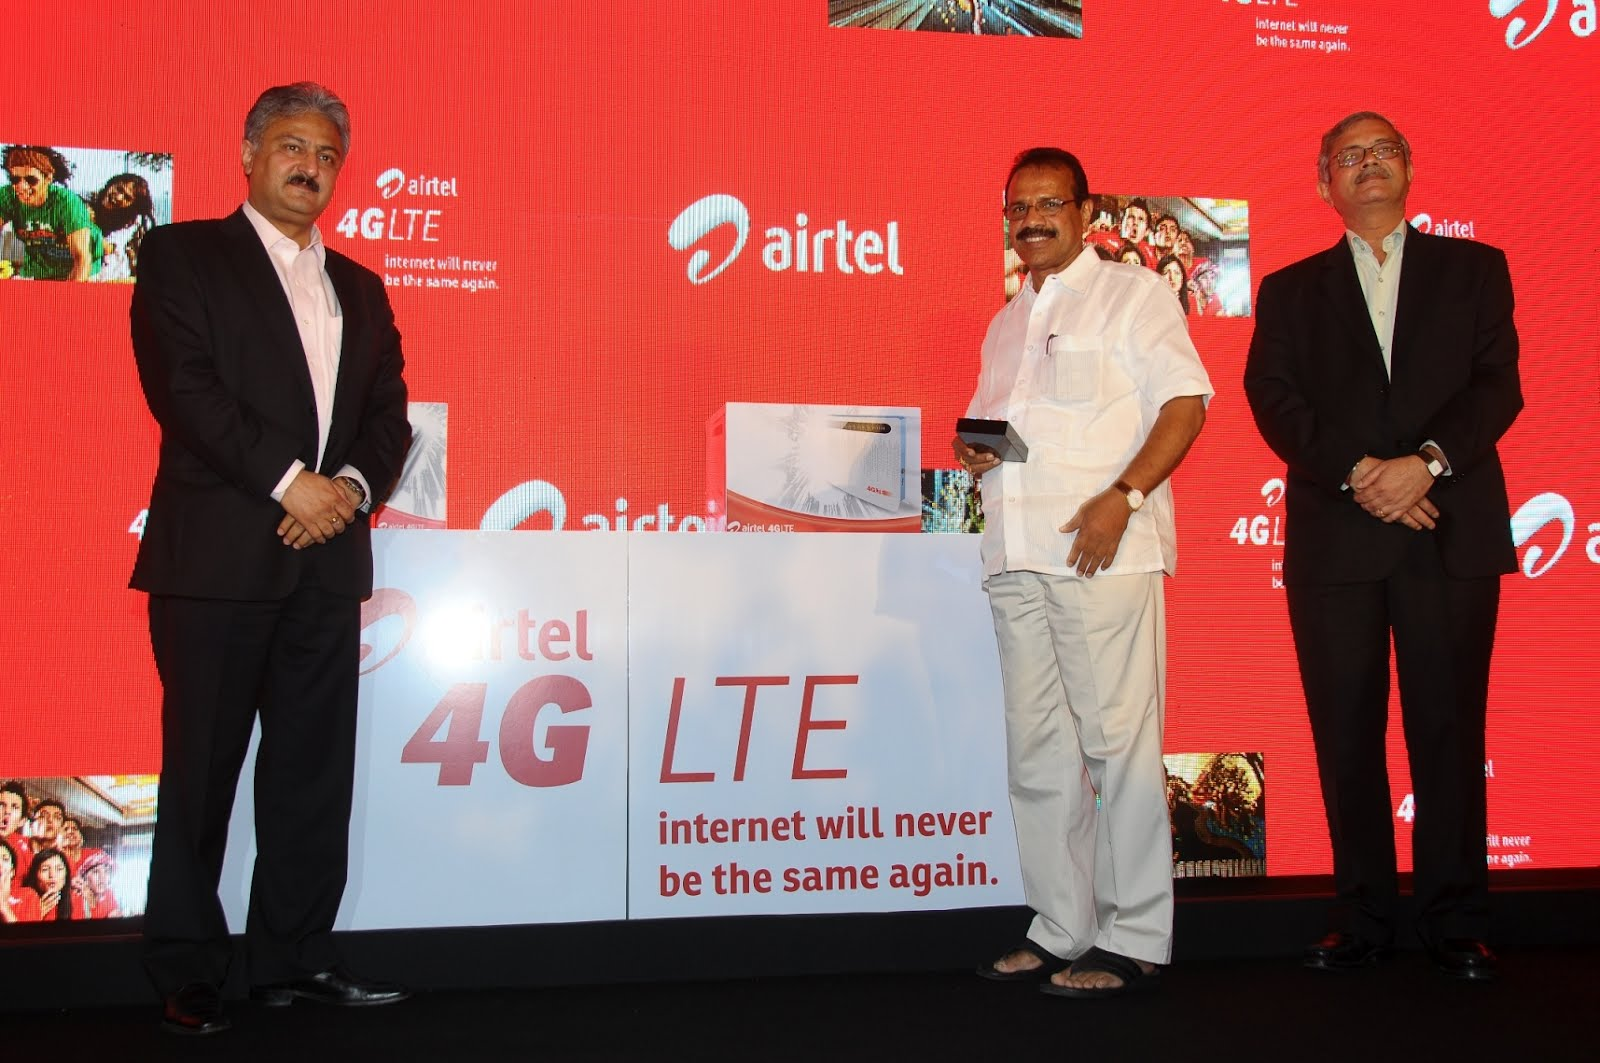 Airtel brings the 4G revolution to Bengaluru | Business News